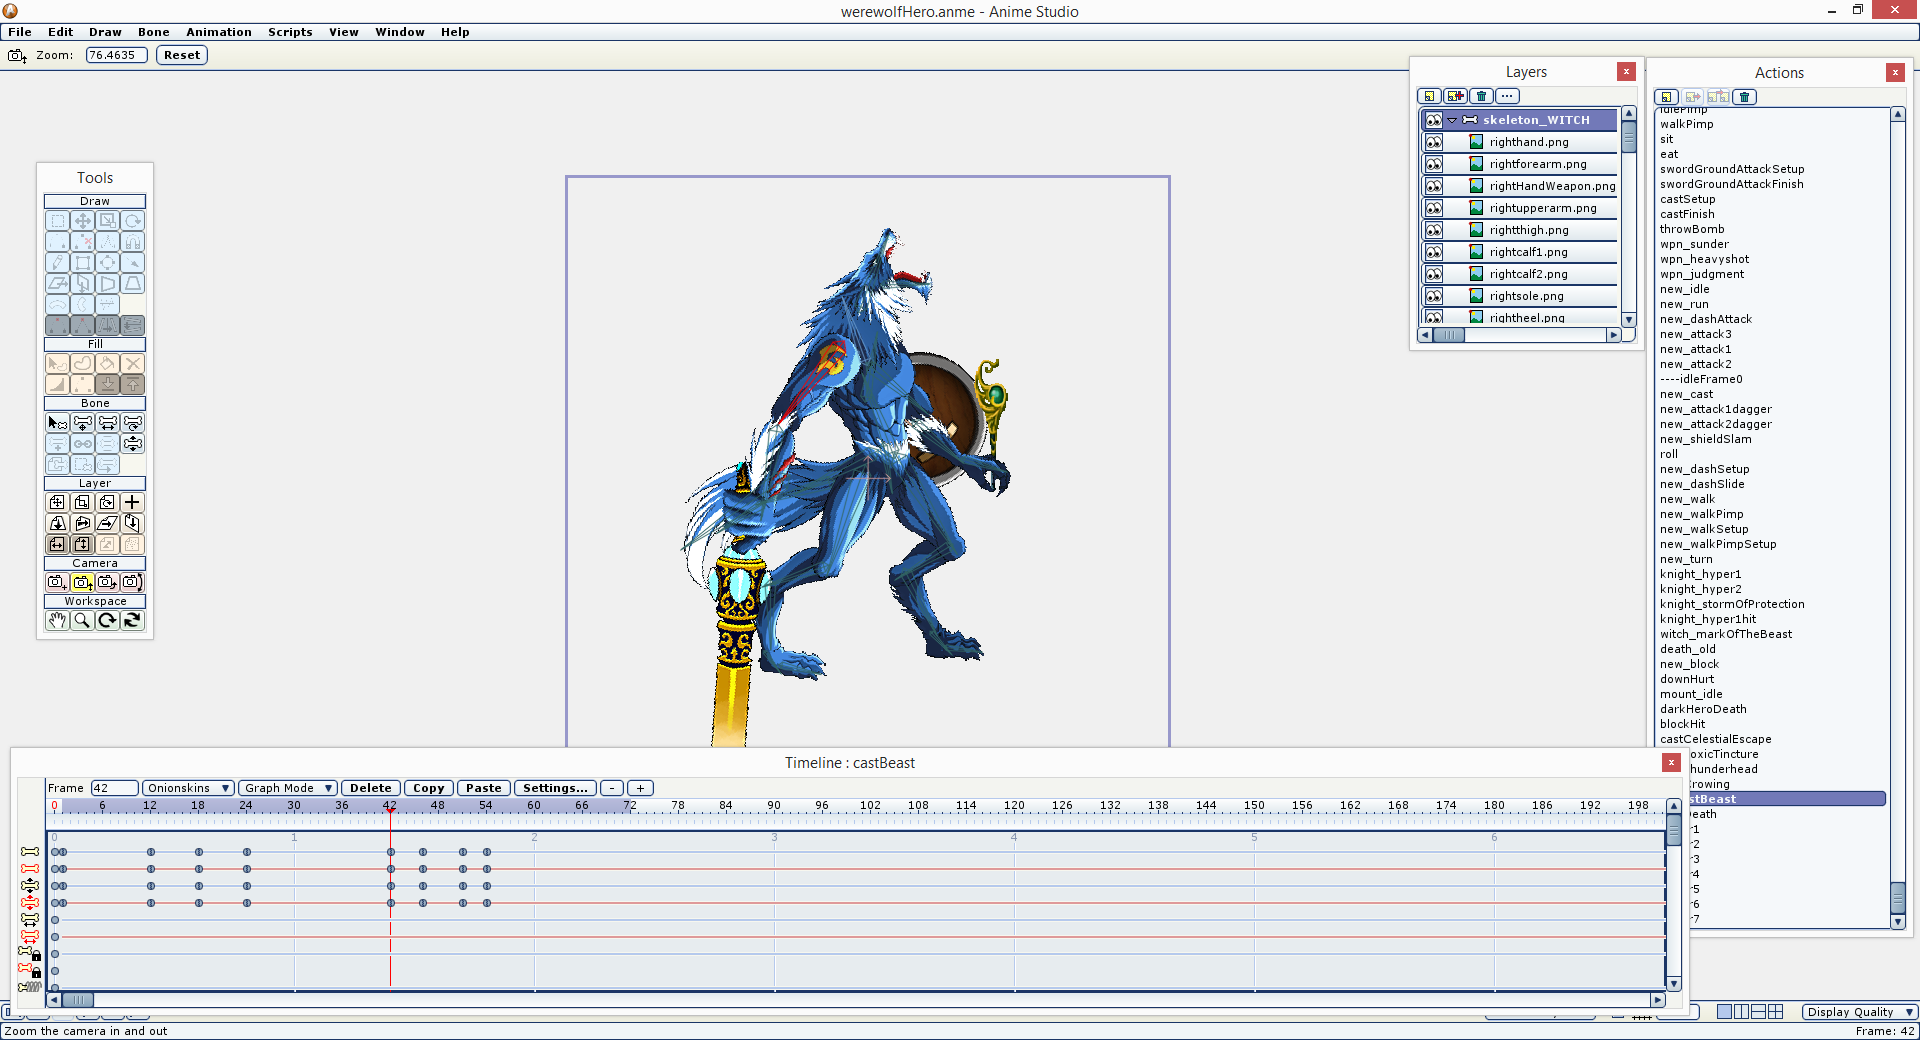 Animated heroes, monsters, and bosses in AnimeStudio